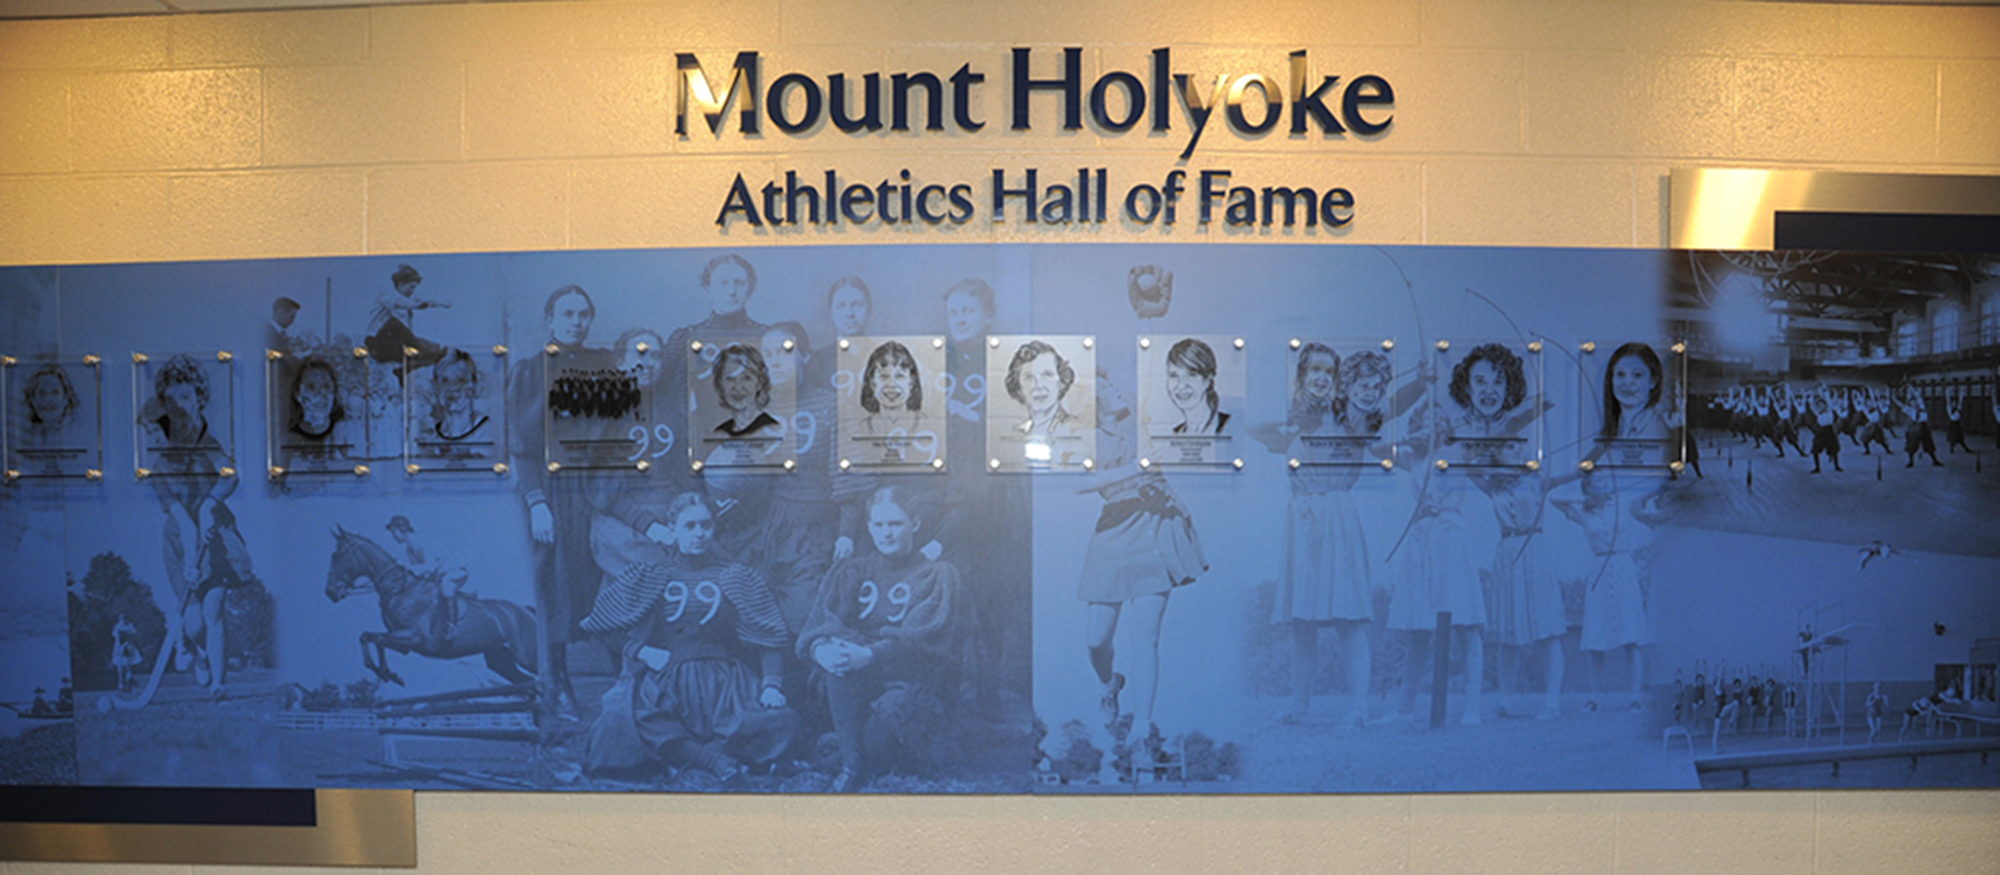 Image of the Mount Holyoke Athletics Hall of Fame Wall within the Kendall Sports & Dance Complex.